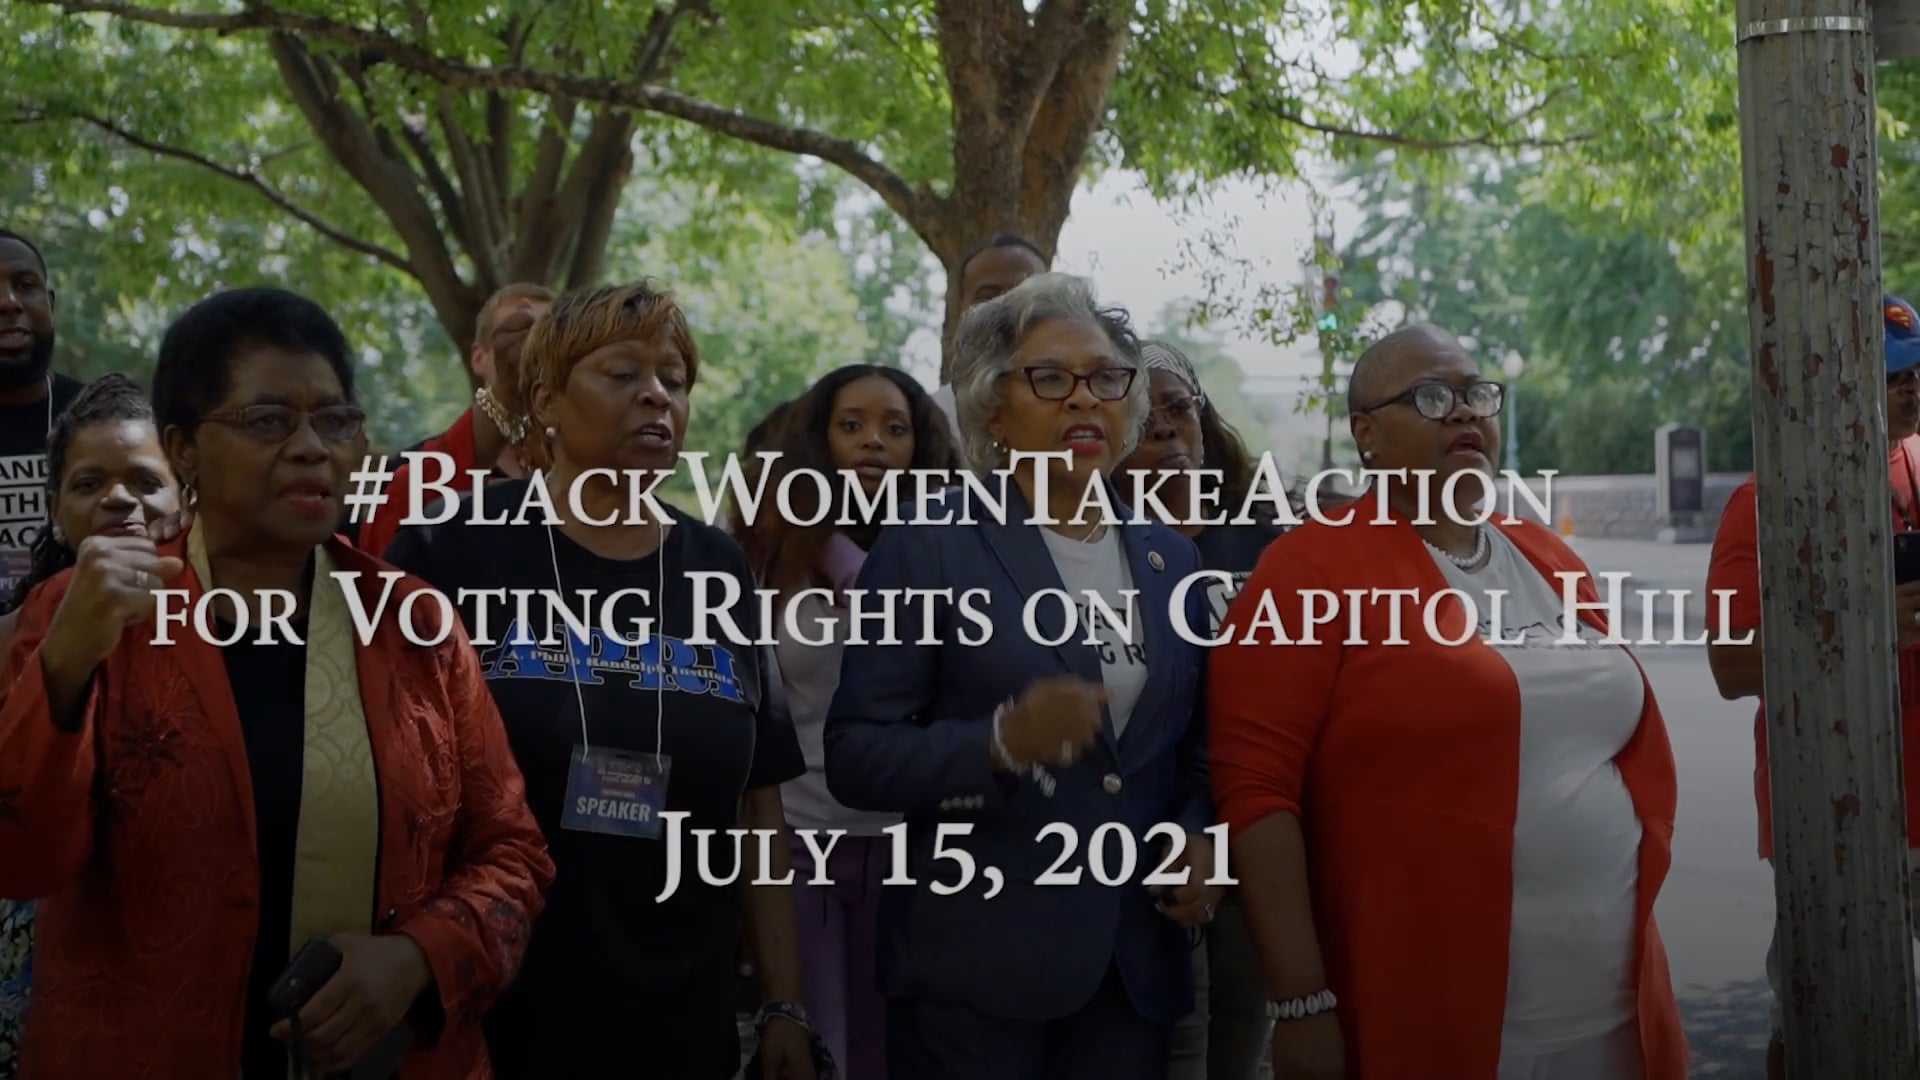 #BlackWomenTakeAction for Voting Rights on Capitol Hill